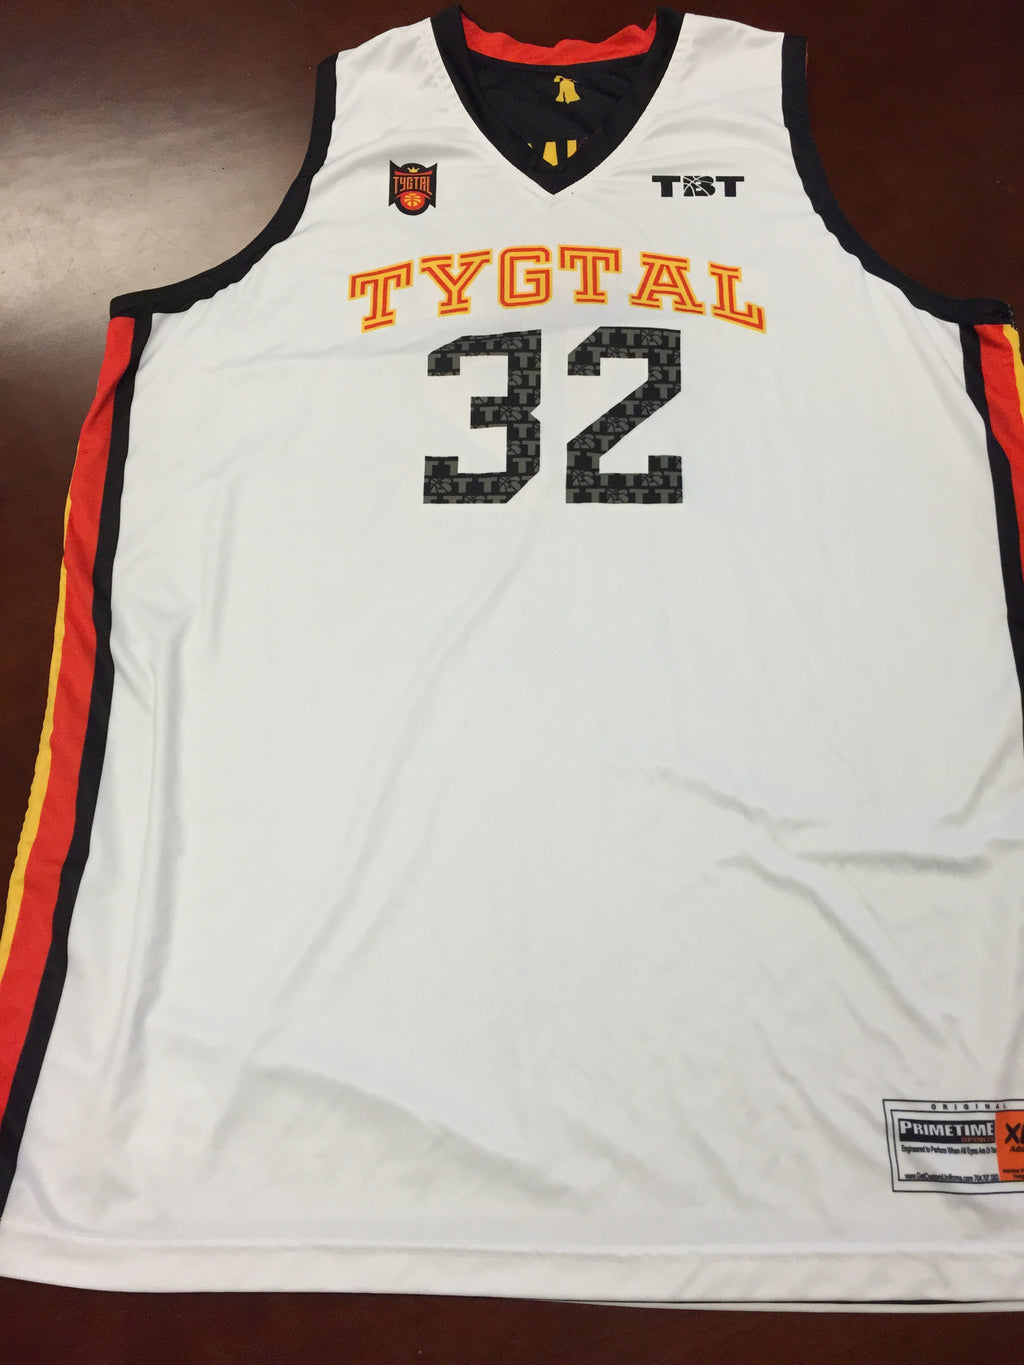 TYGTAL - 2014 Official Team Jersey (XL)